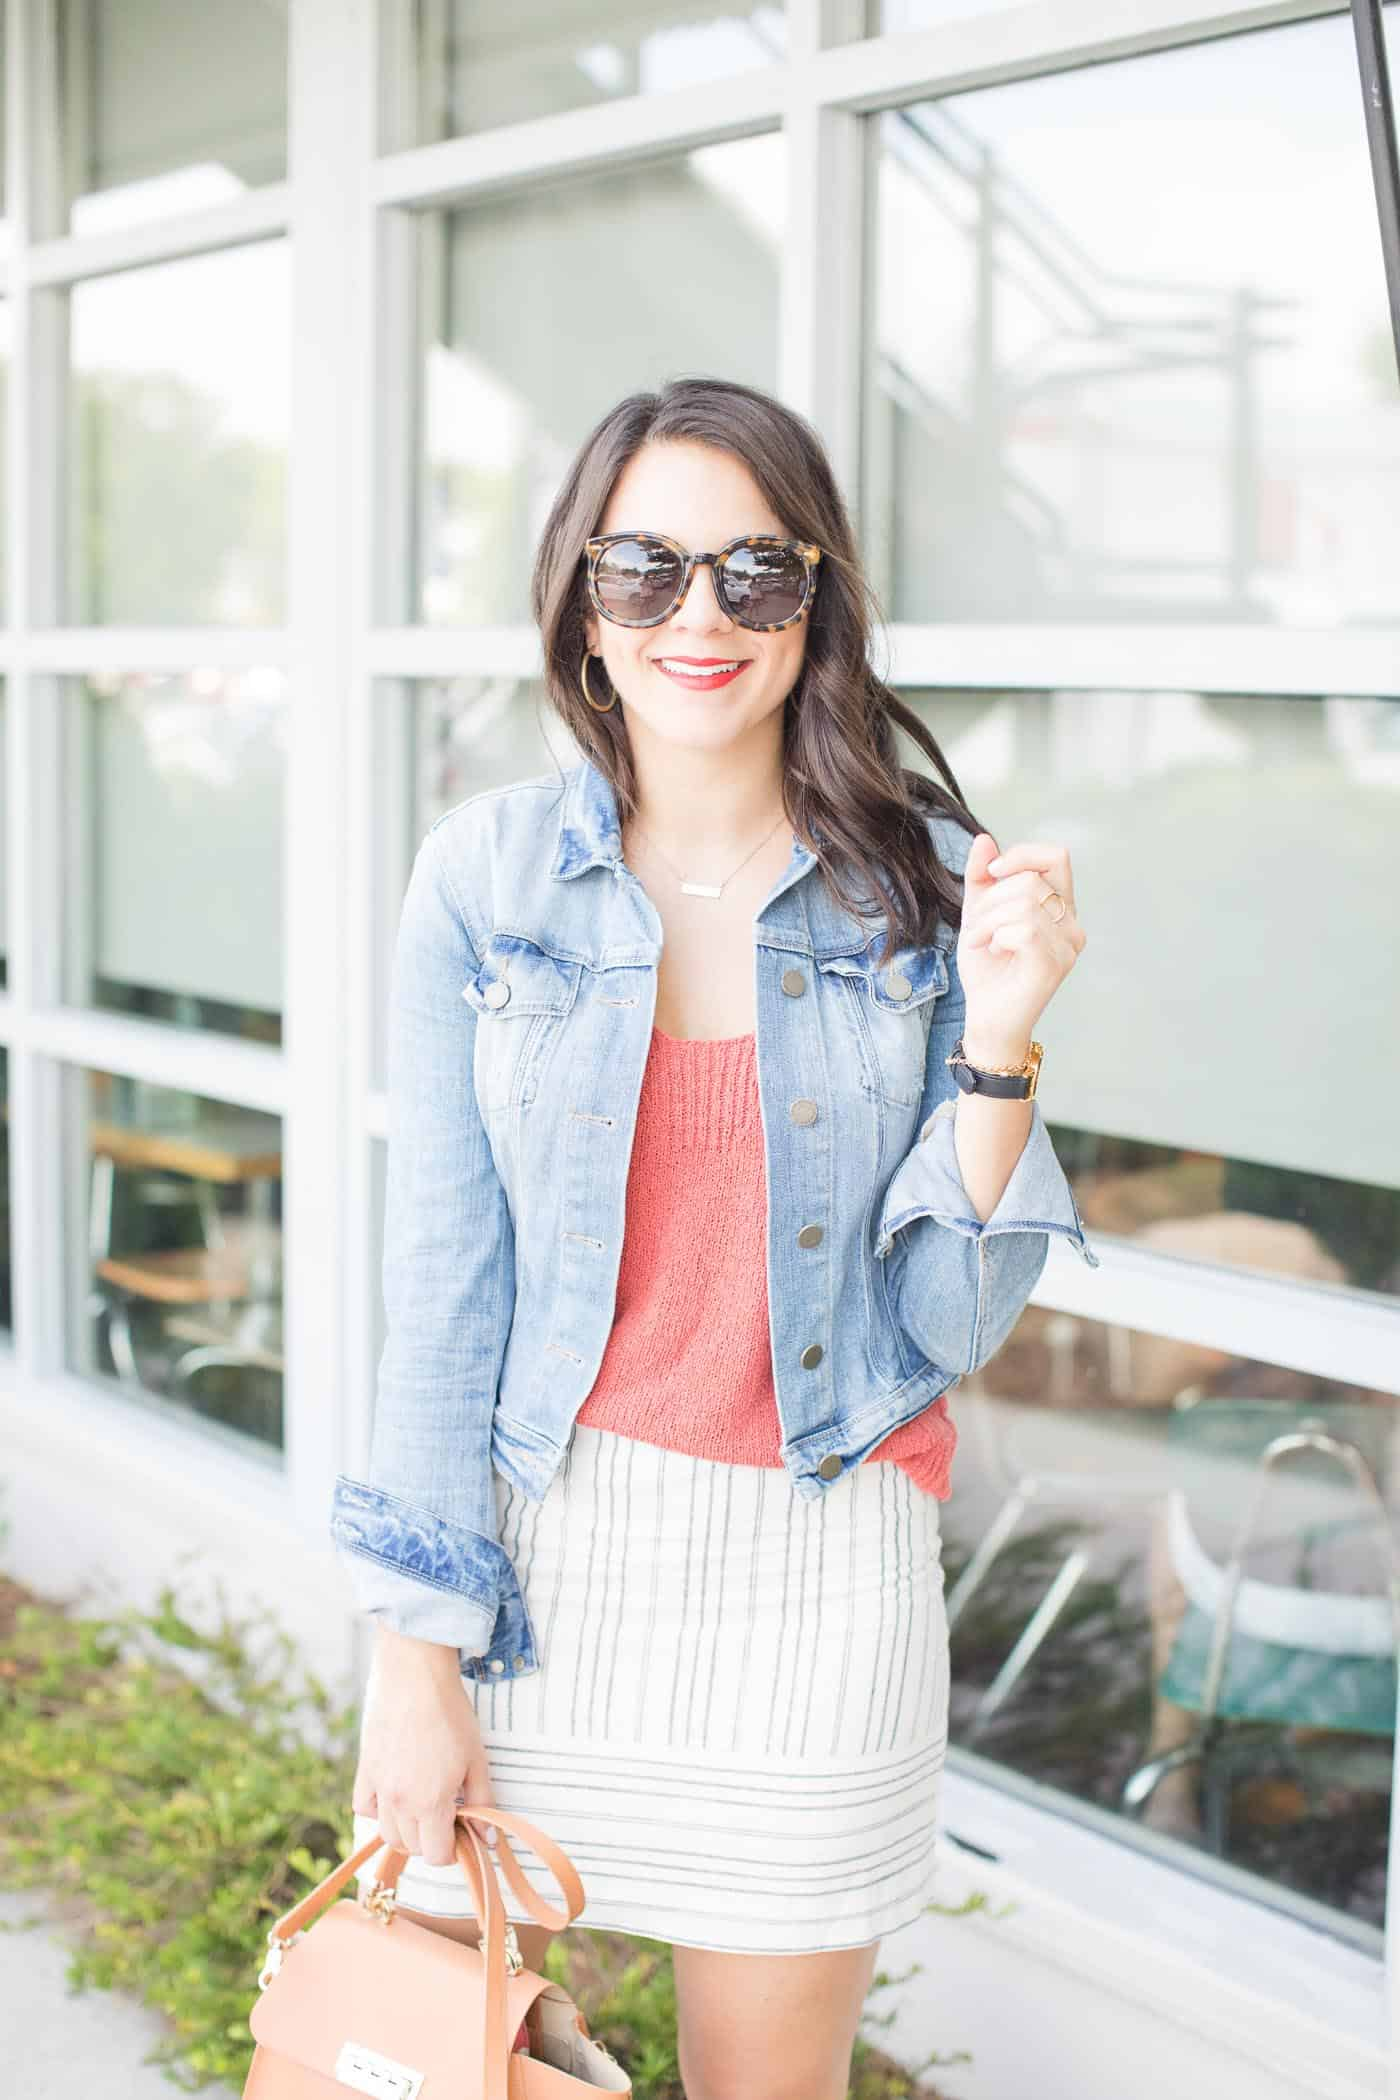 Mini skirt ideas, how to style a mini skirt for summer - My Style Vita @mystylevita